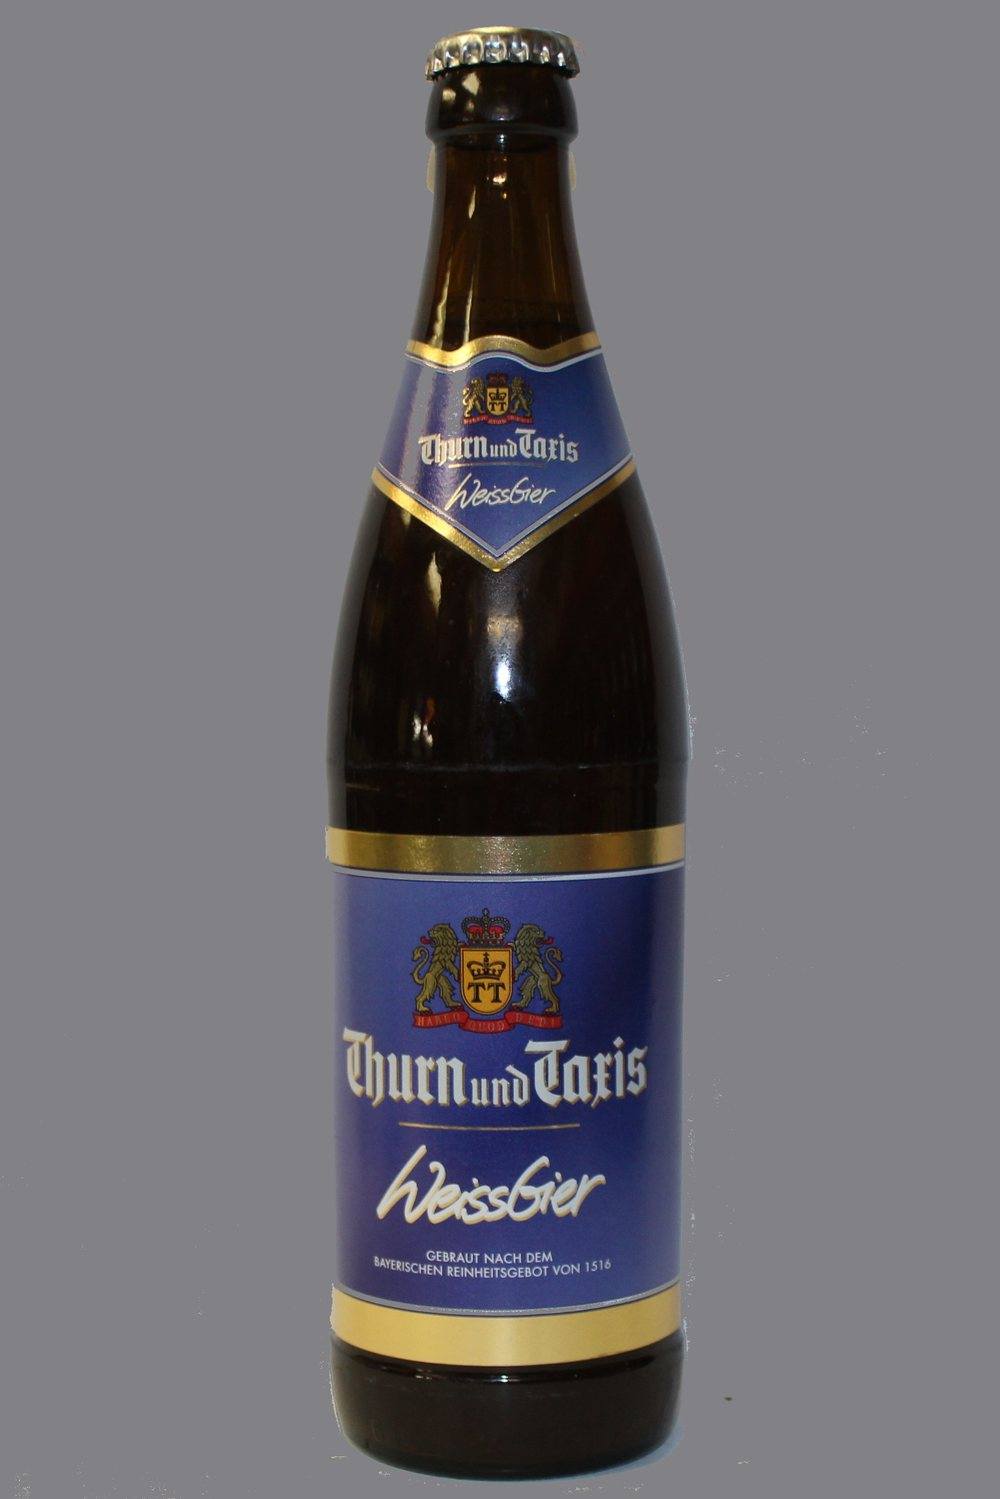 THURN and TARXI-Weissbier.jpg